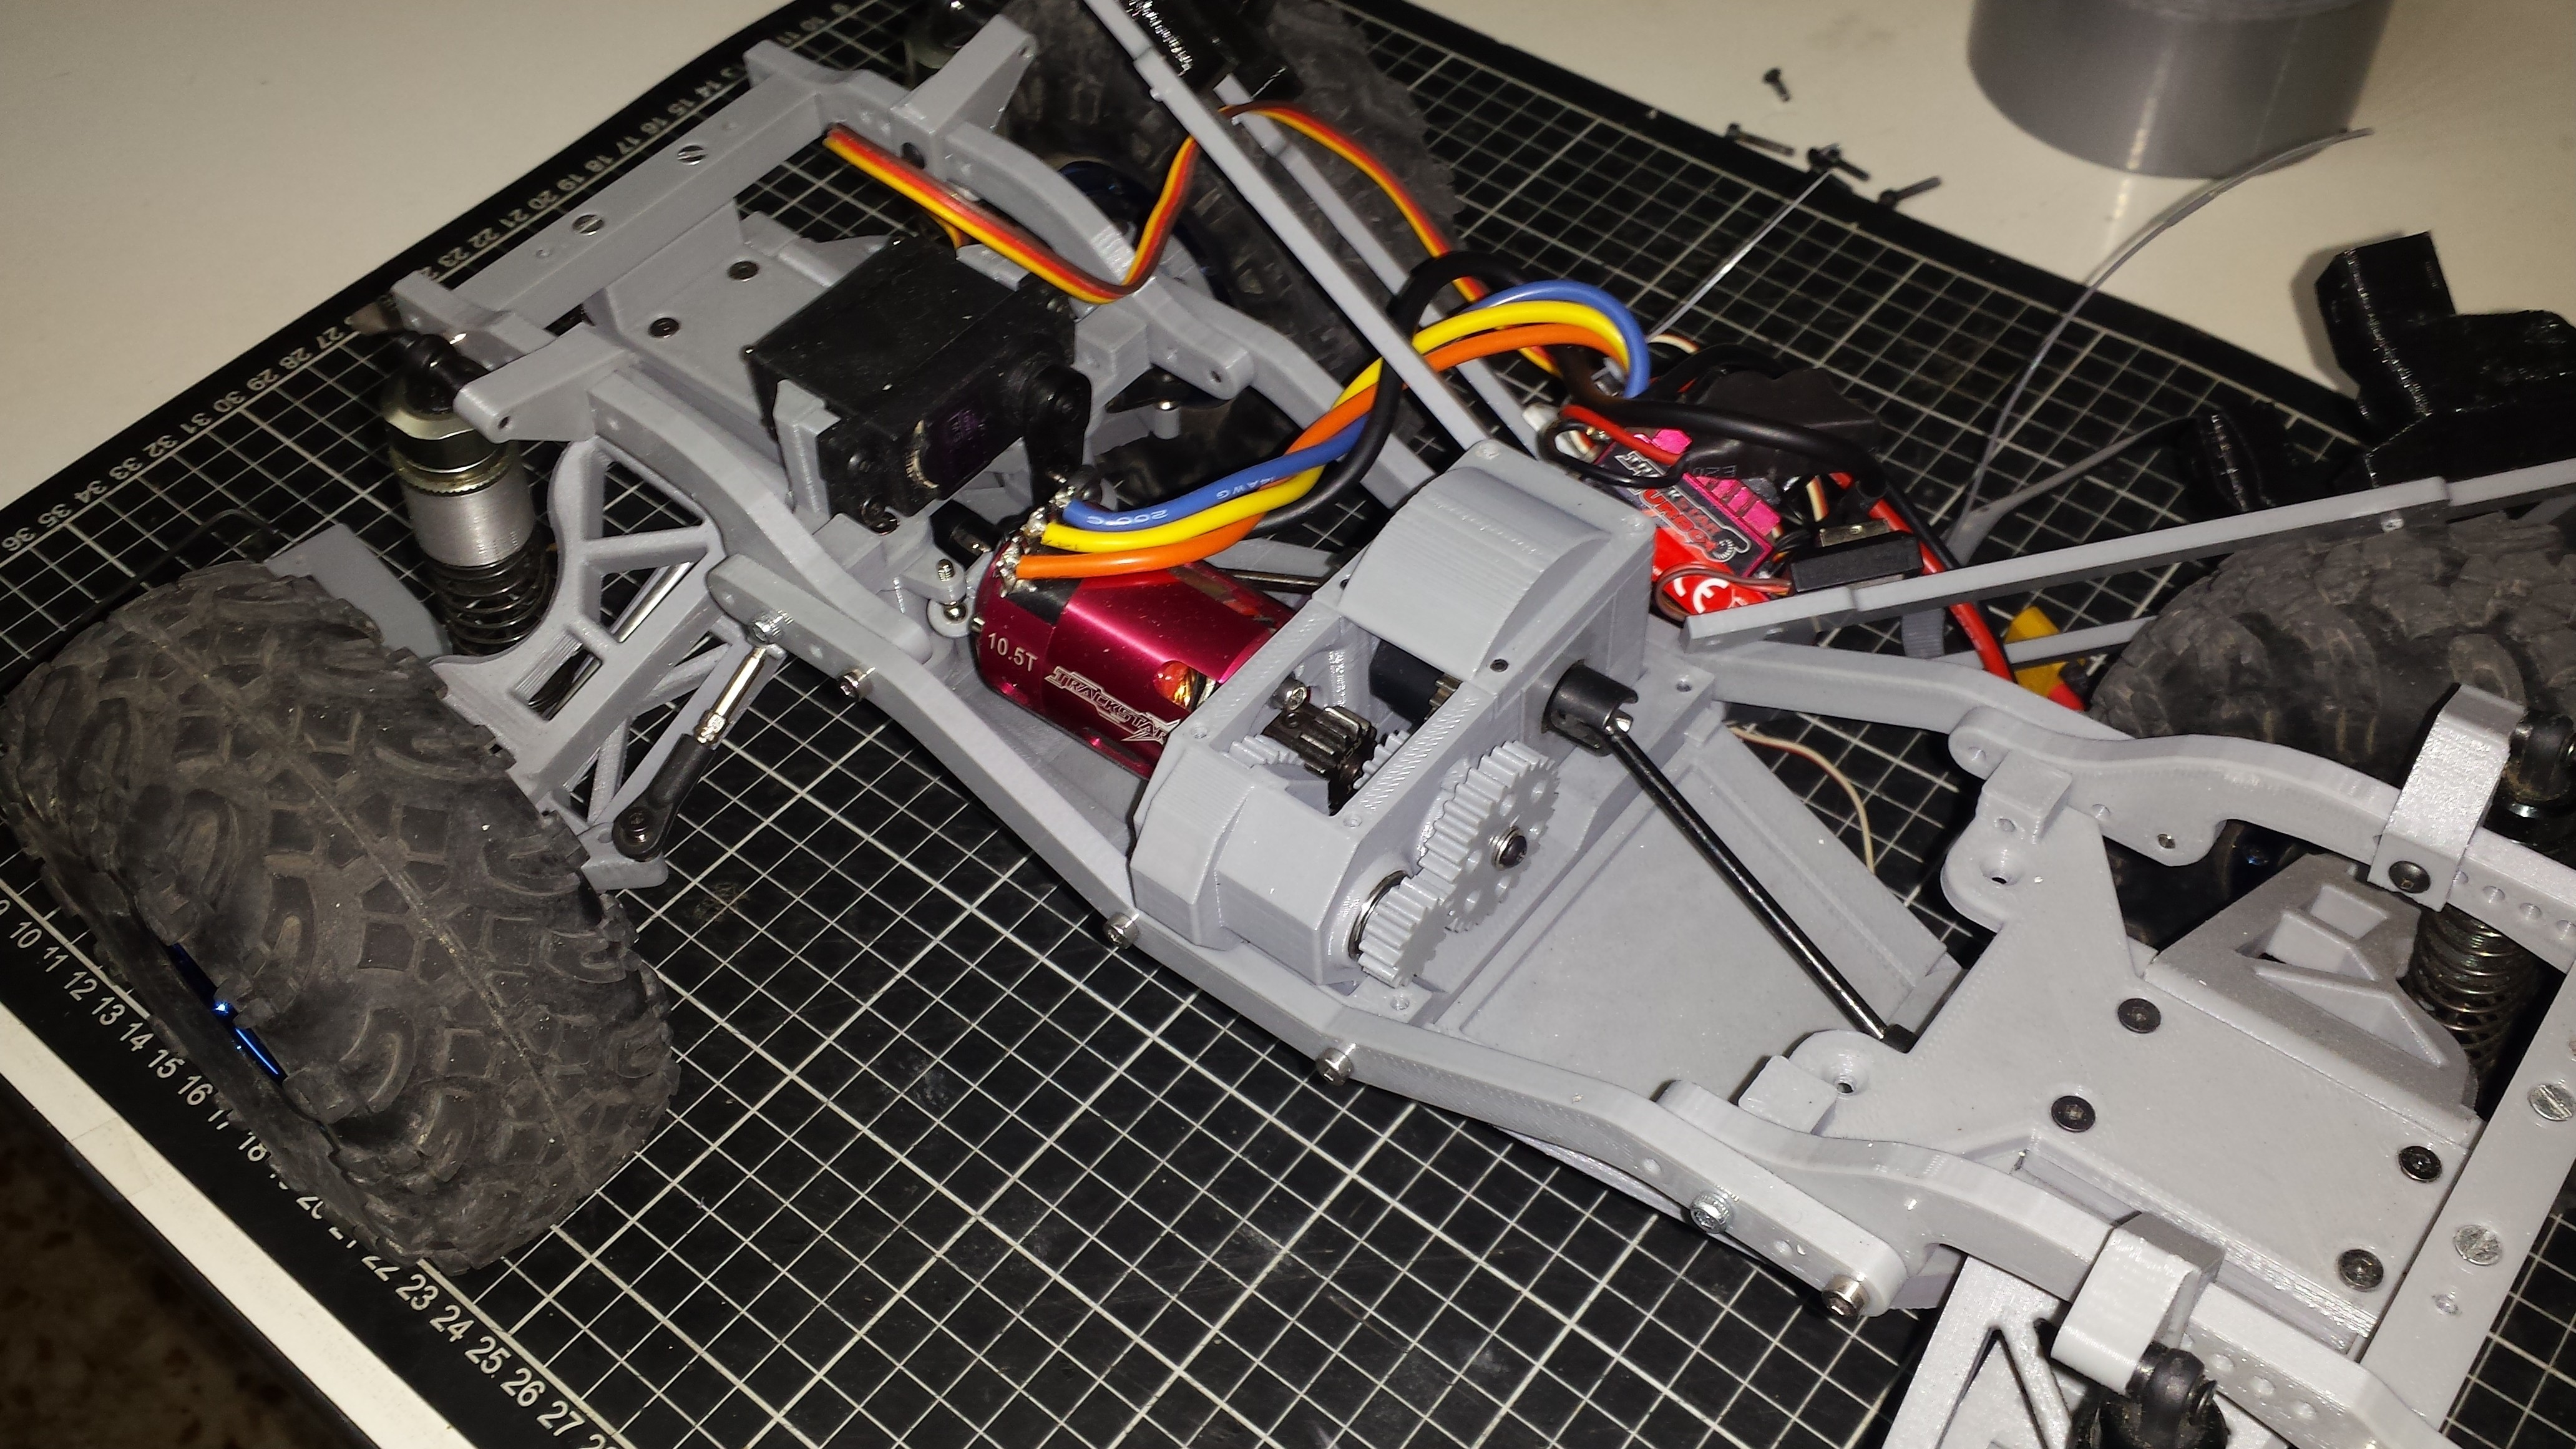 20180606_173634.jpg Download STL file MyRCCar 1/10 MTC Chassis Updated. Customizable chassis for Monster Truck, Crawler or Scale RC Car • 3D printer model, dlb5